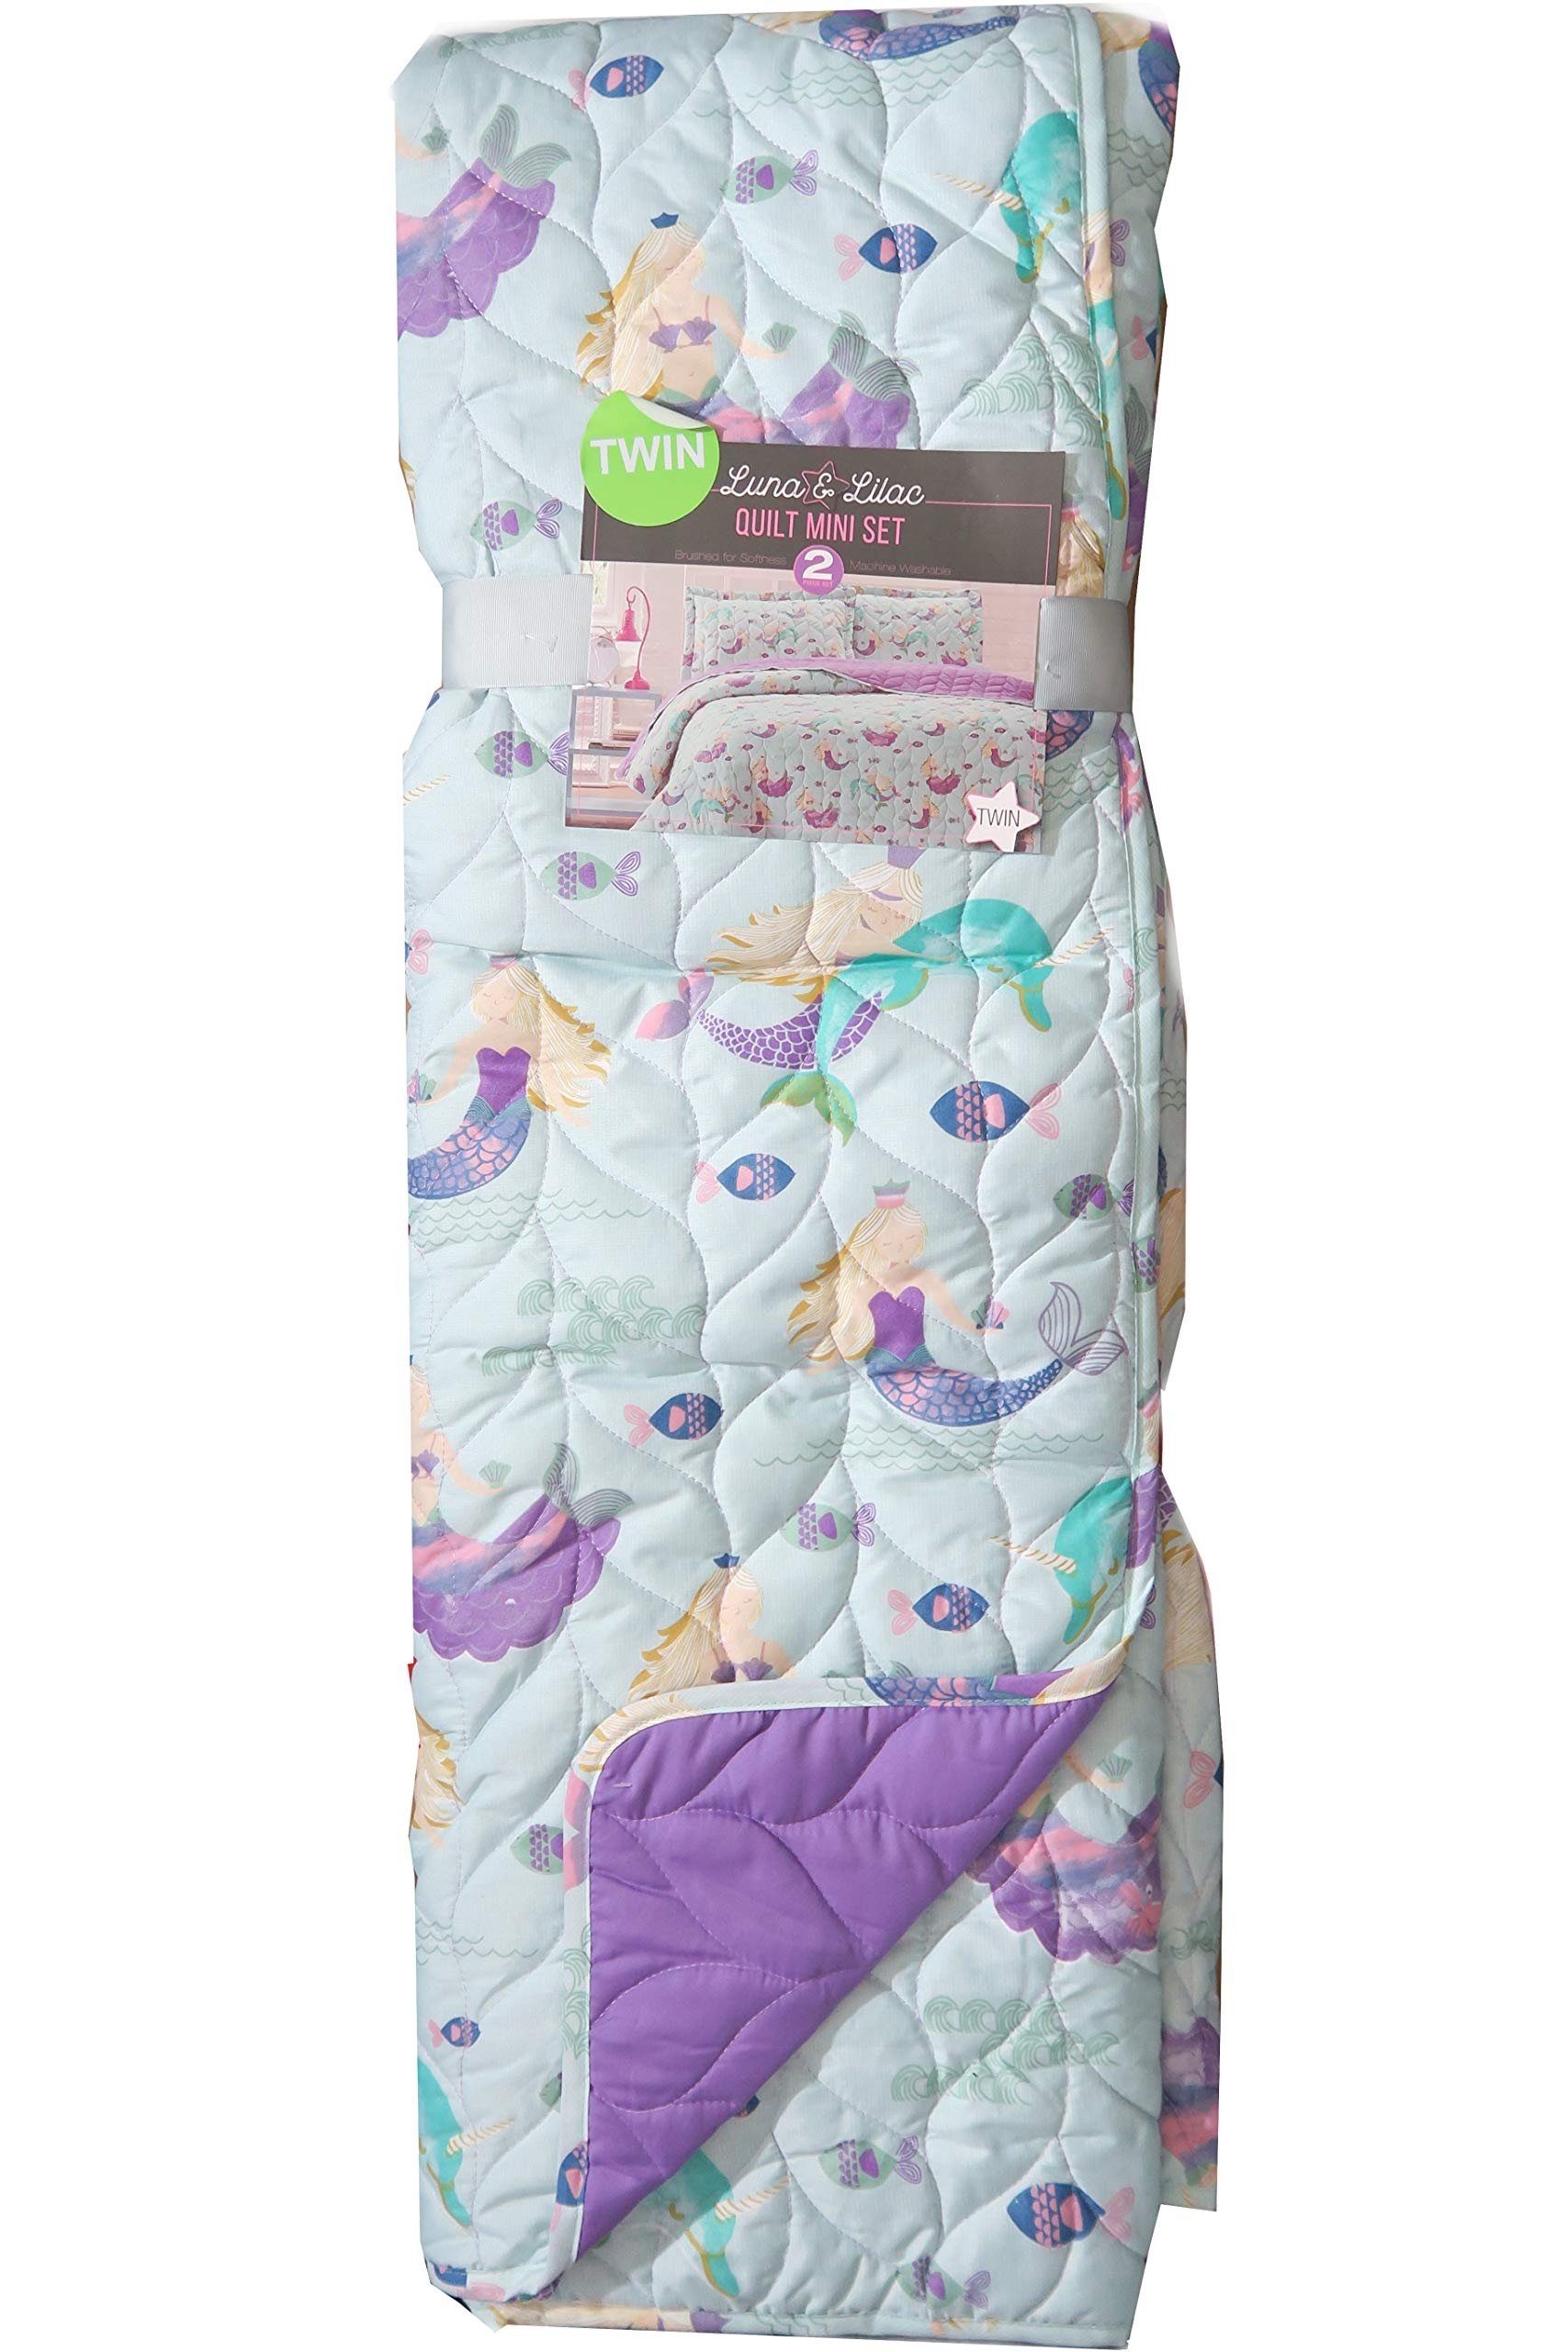 Luna & Lilac Kids Turqouise Mermaids and Narwhals Bedding Quilt Set (Twin)